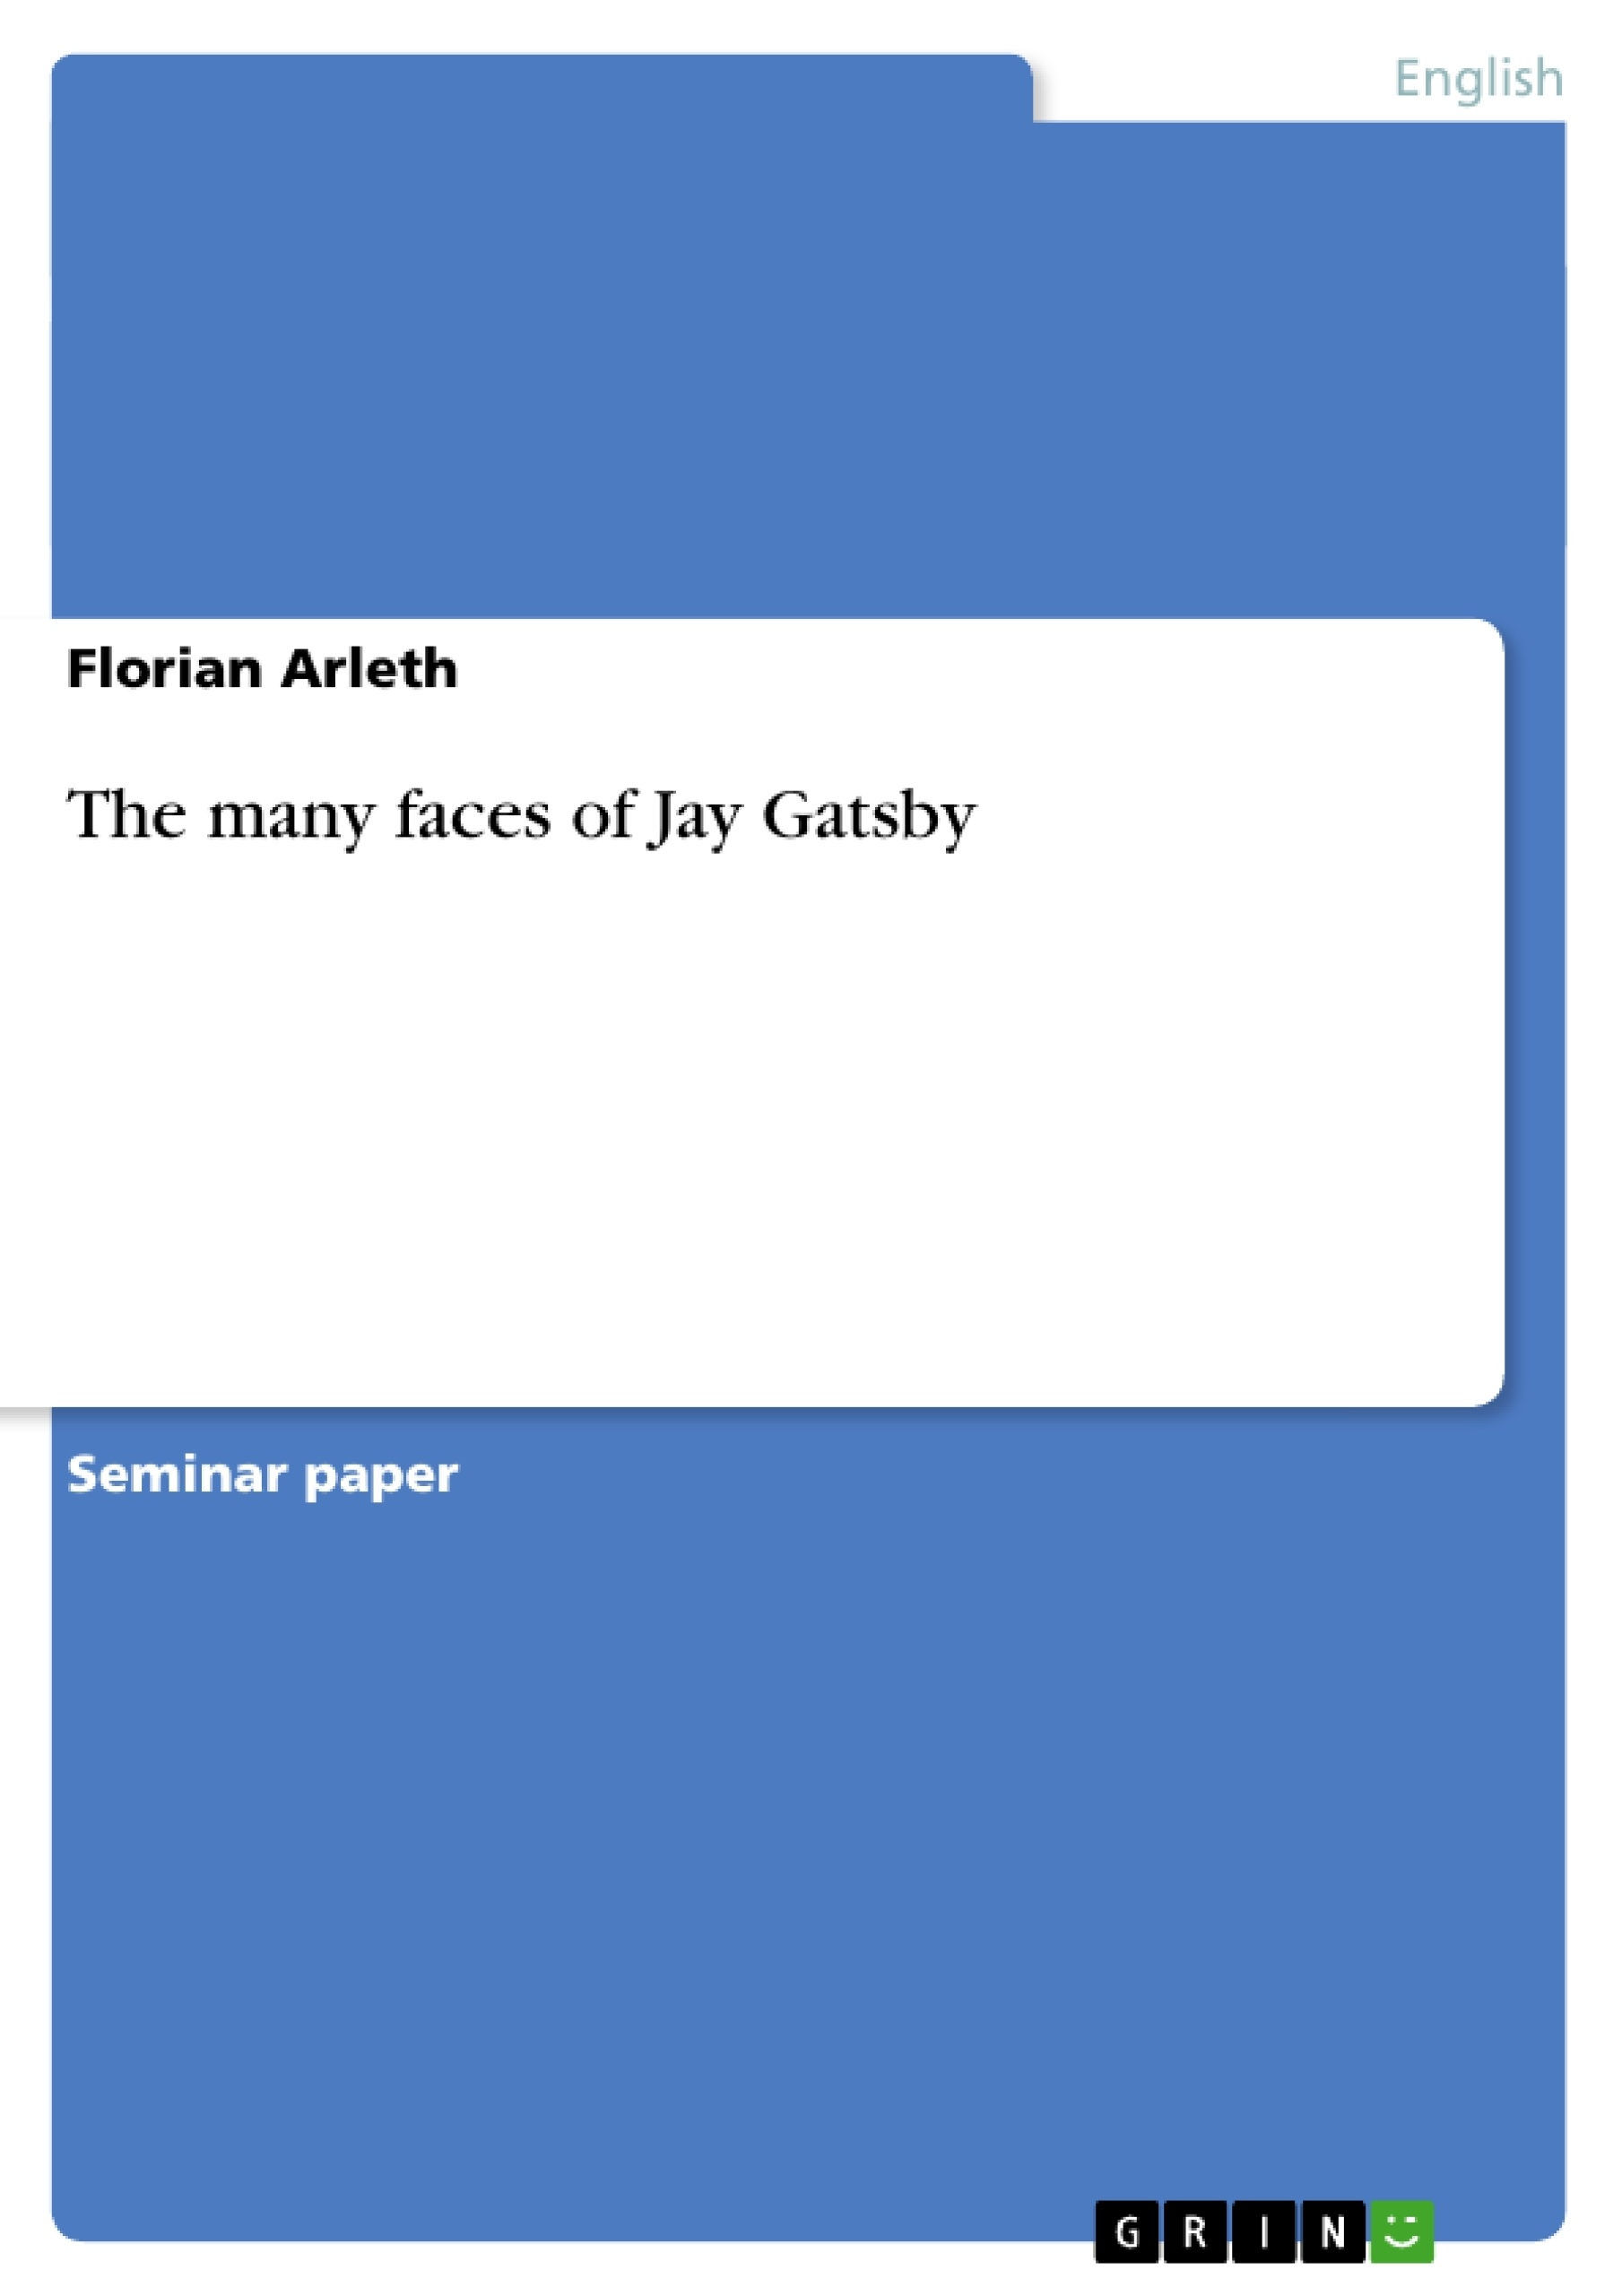 Title: The many faces of Jay Gatsby